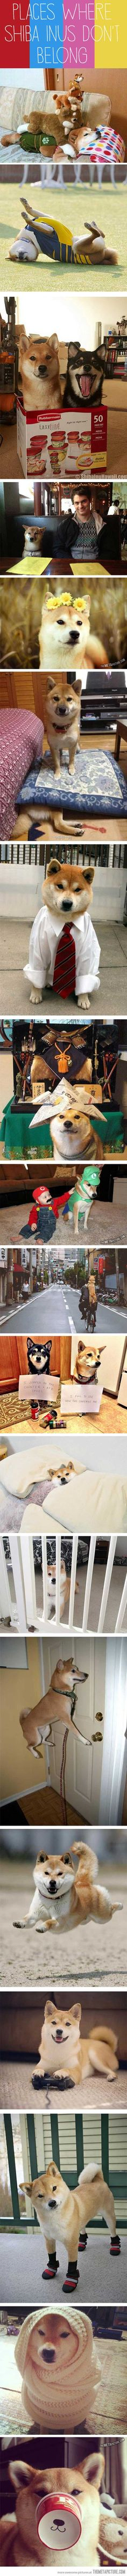 Funny pictures about Places Shiba Inus don't belong. Oh, and cool pics about Places Shiba Inus don't belong. Also, Places Shiba Inus don't belong. Shiba Inu, Cute Puppies, Cute Dogs, Dogs And Puppies, Animals And Pets, Funny Animals, Cute Animals, Japanese Dogs, Funny Cute